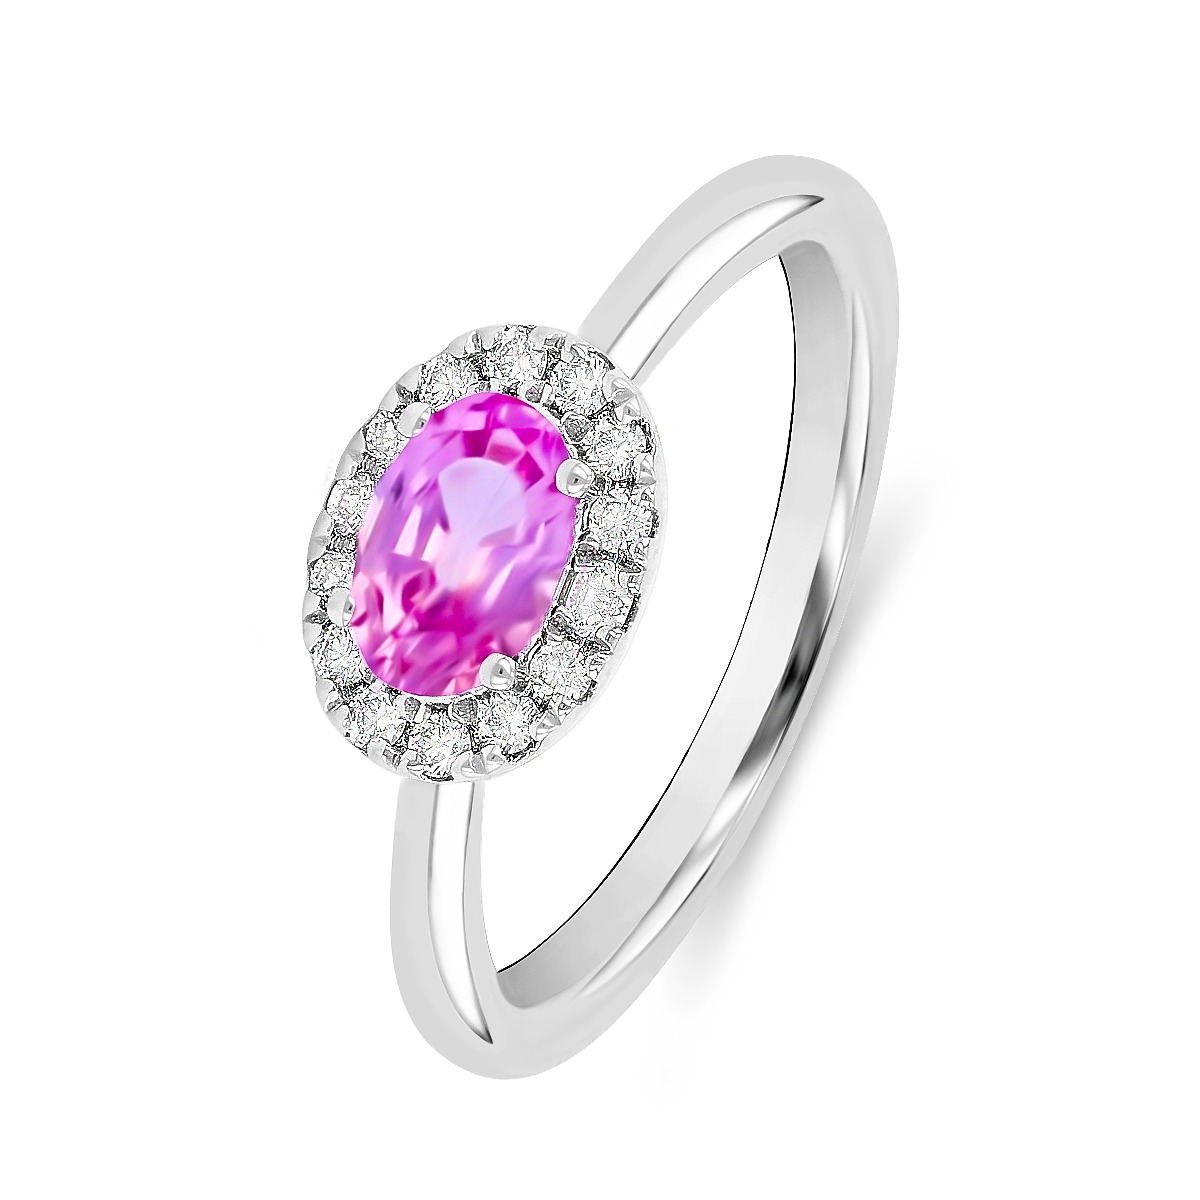 Rosa Mer Collection 0.50ct Pink Sapphire Halo Ring